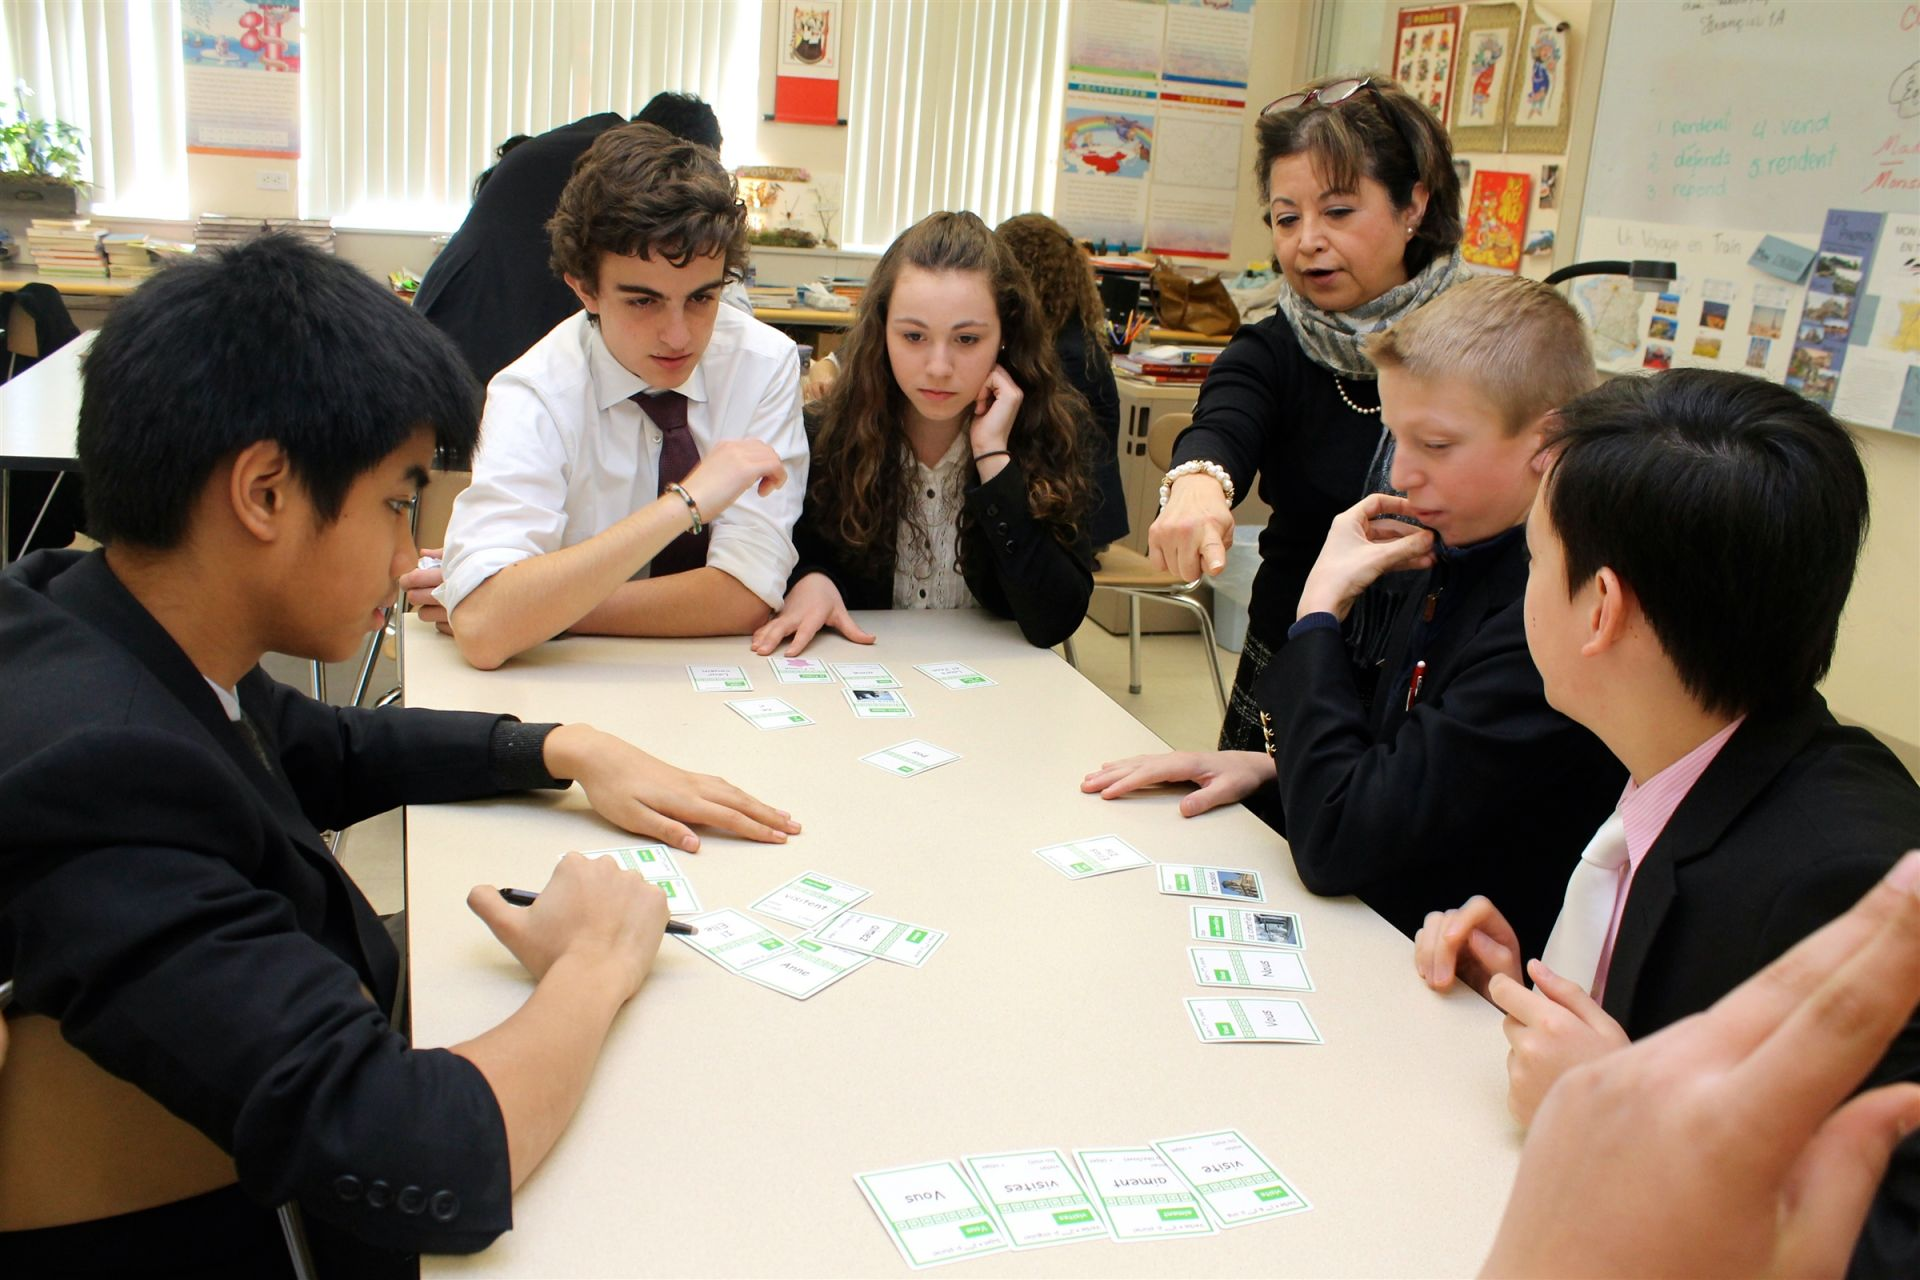 Upon entering the Upper School, students select one world language that they will study for the duration of their time at Fay. Students choose from French, Spanish, Mandarin Chinese, and Latin. All language courses provide foundational experience with writing and speaking as well as encouraging cultural awareness through music, newscasts, short films, poetry, and/or thematic projects. Even a card game can be a great way to review verb tenses!